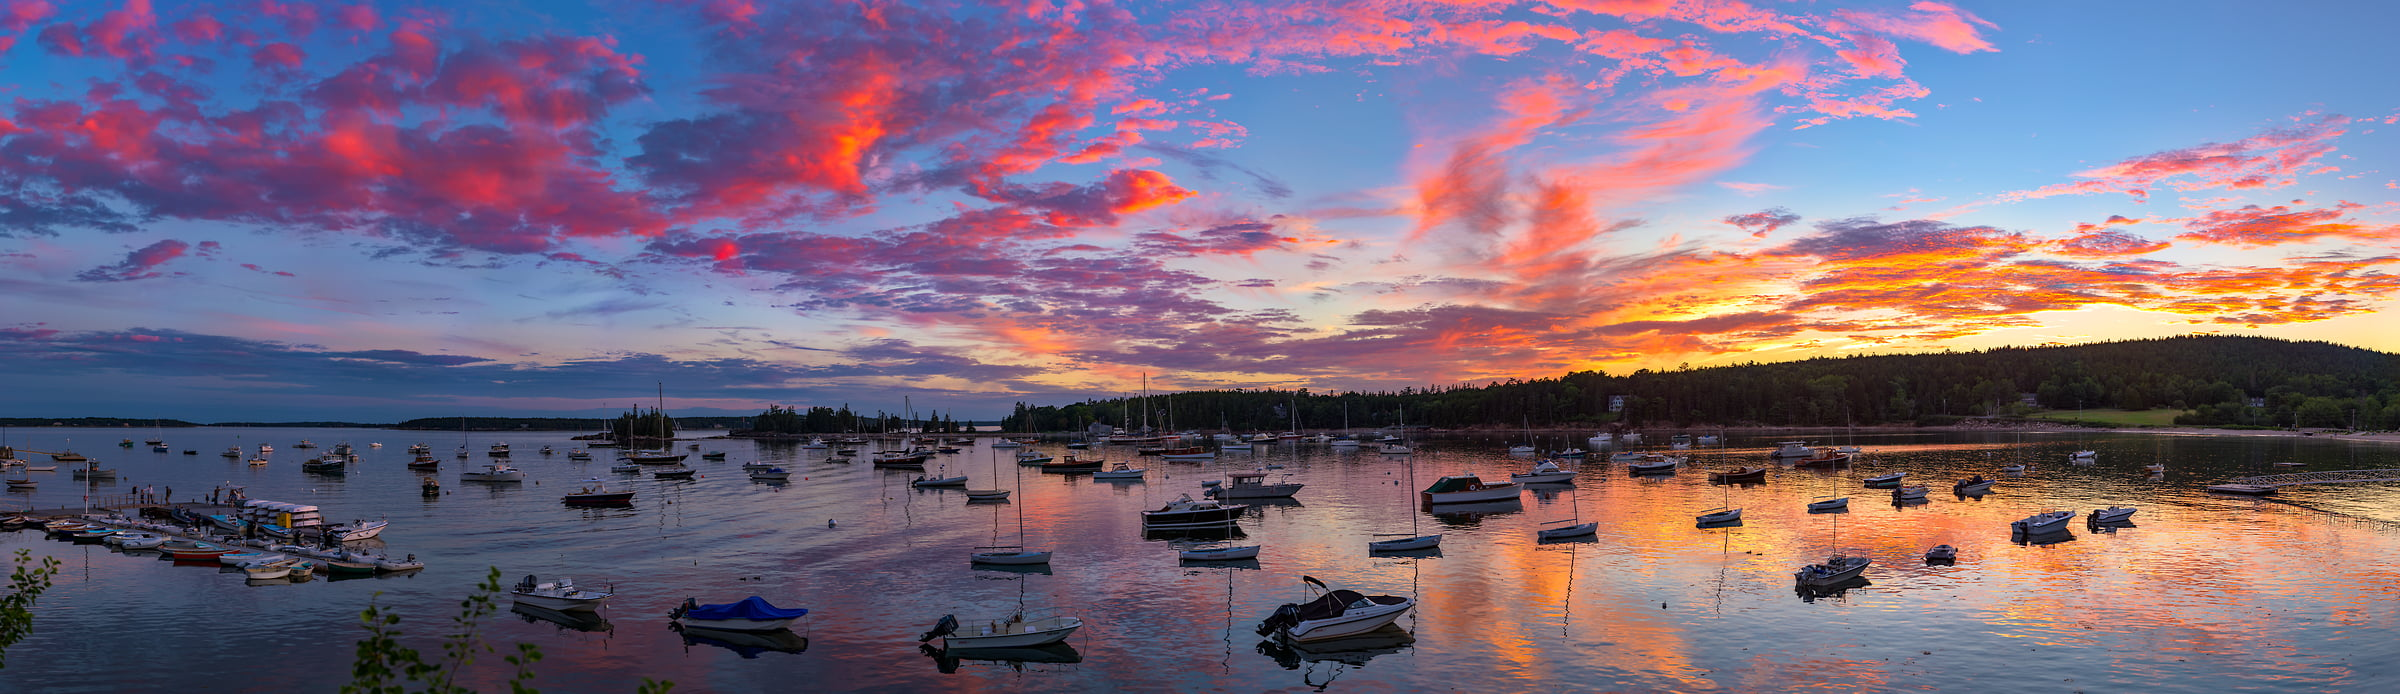 952 megapixels! A very high resolution, large-format VAST photo of a New England harbor with boats at sunset; fine art landscape photograph created by Aaron Priest in Seal Harbor, Maine